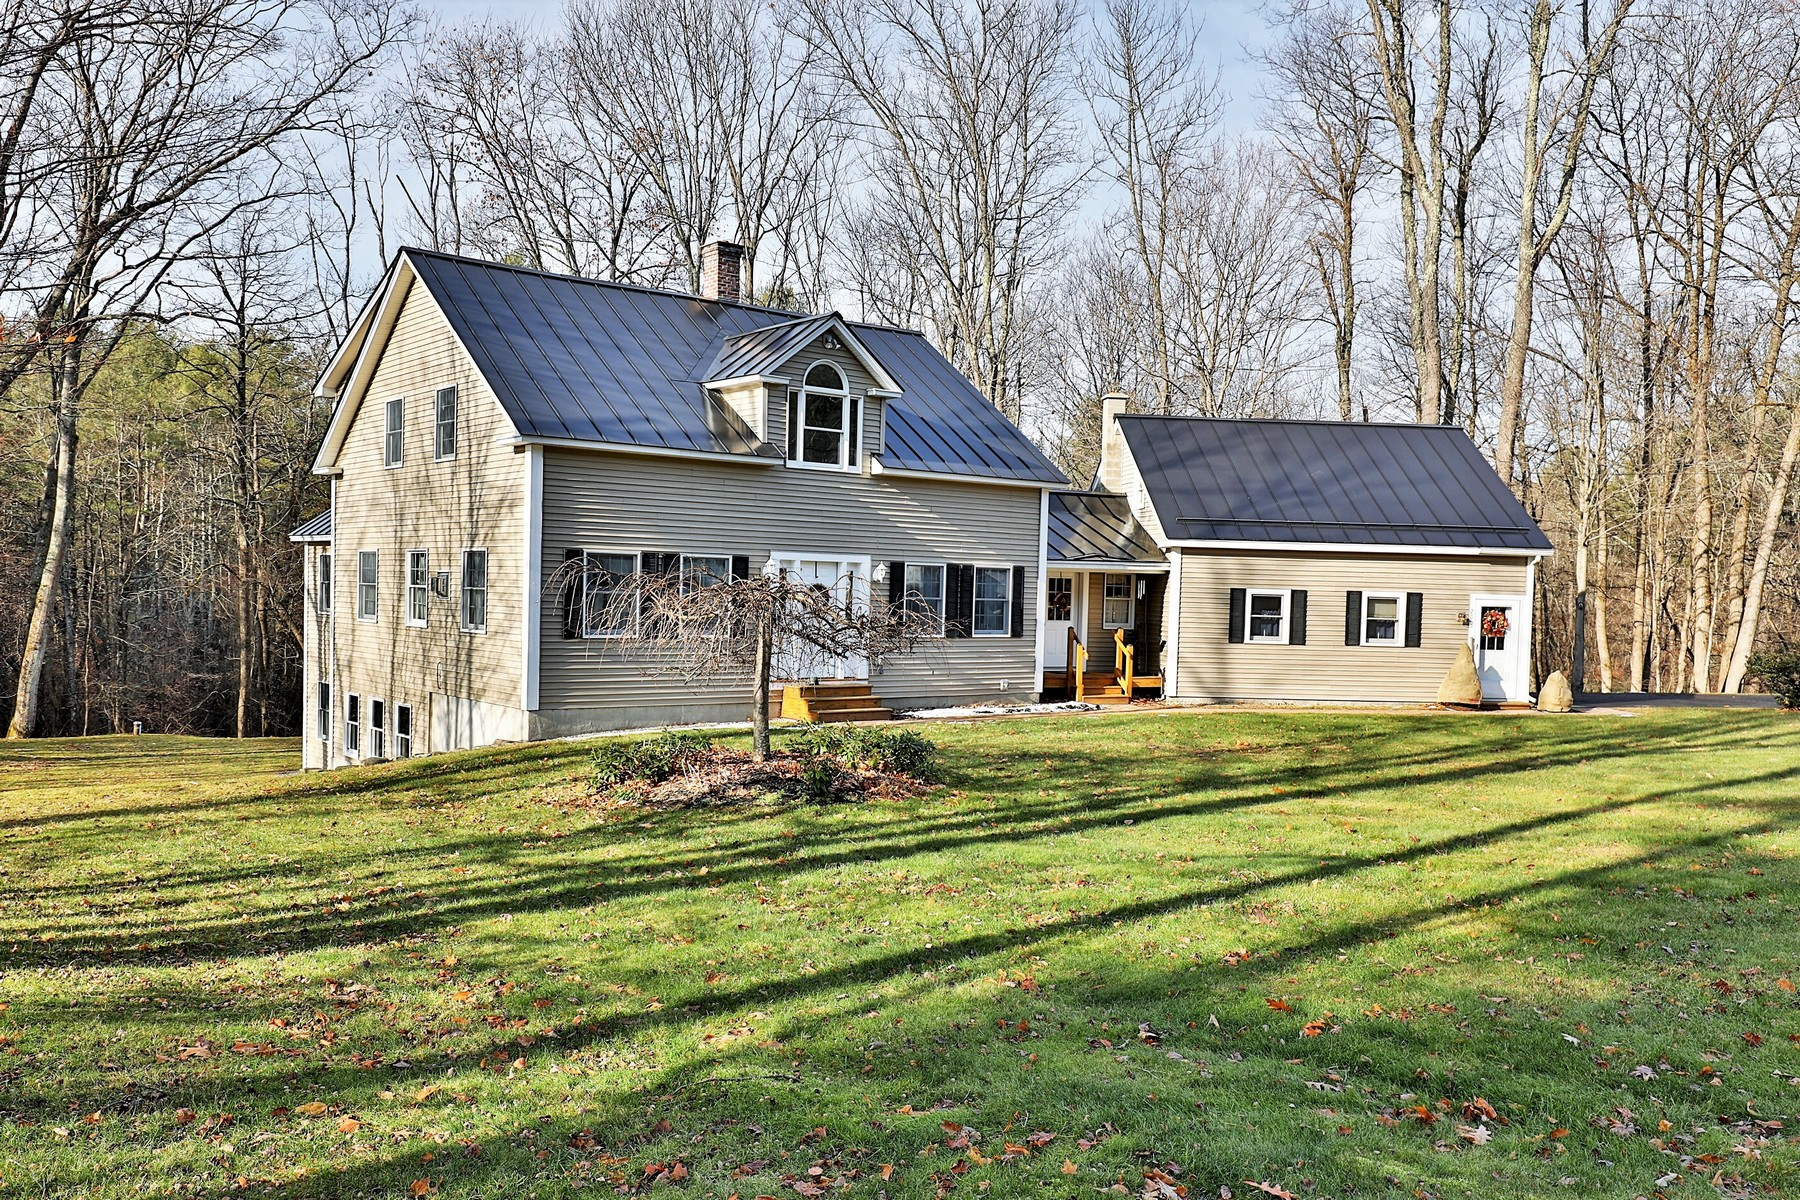 Single Family Homes for Sale at Meticulously Maintained Quality Cape 200 Lower Bartonsville Rd Rockingham, Vermont 05101 United States